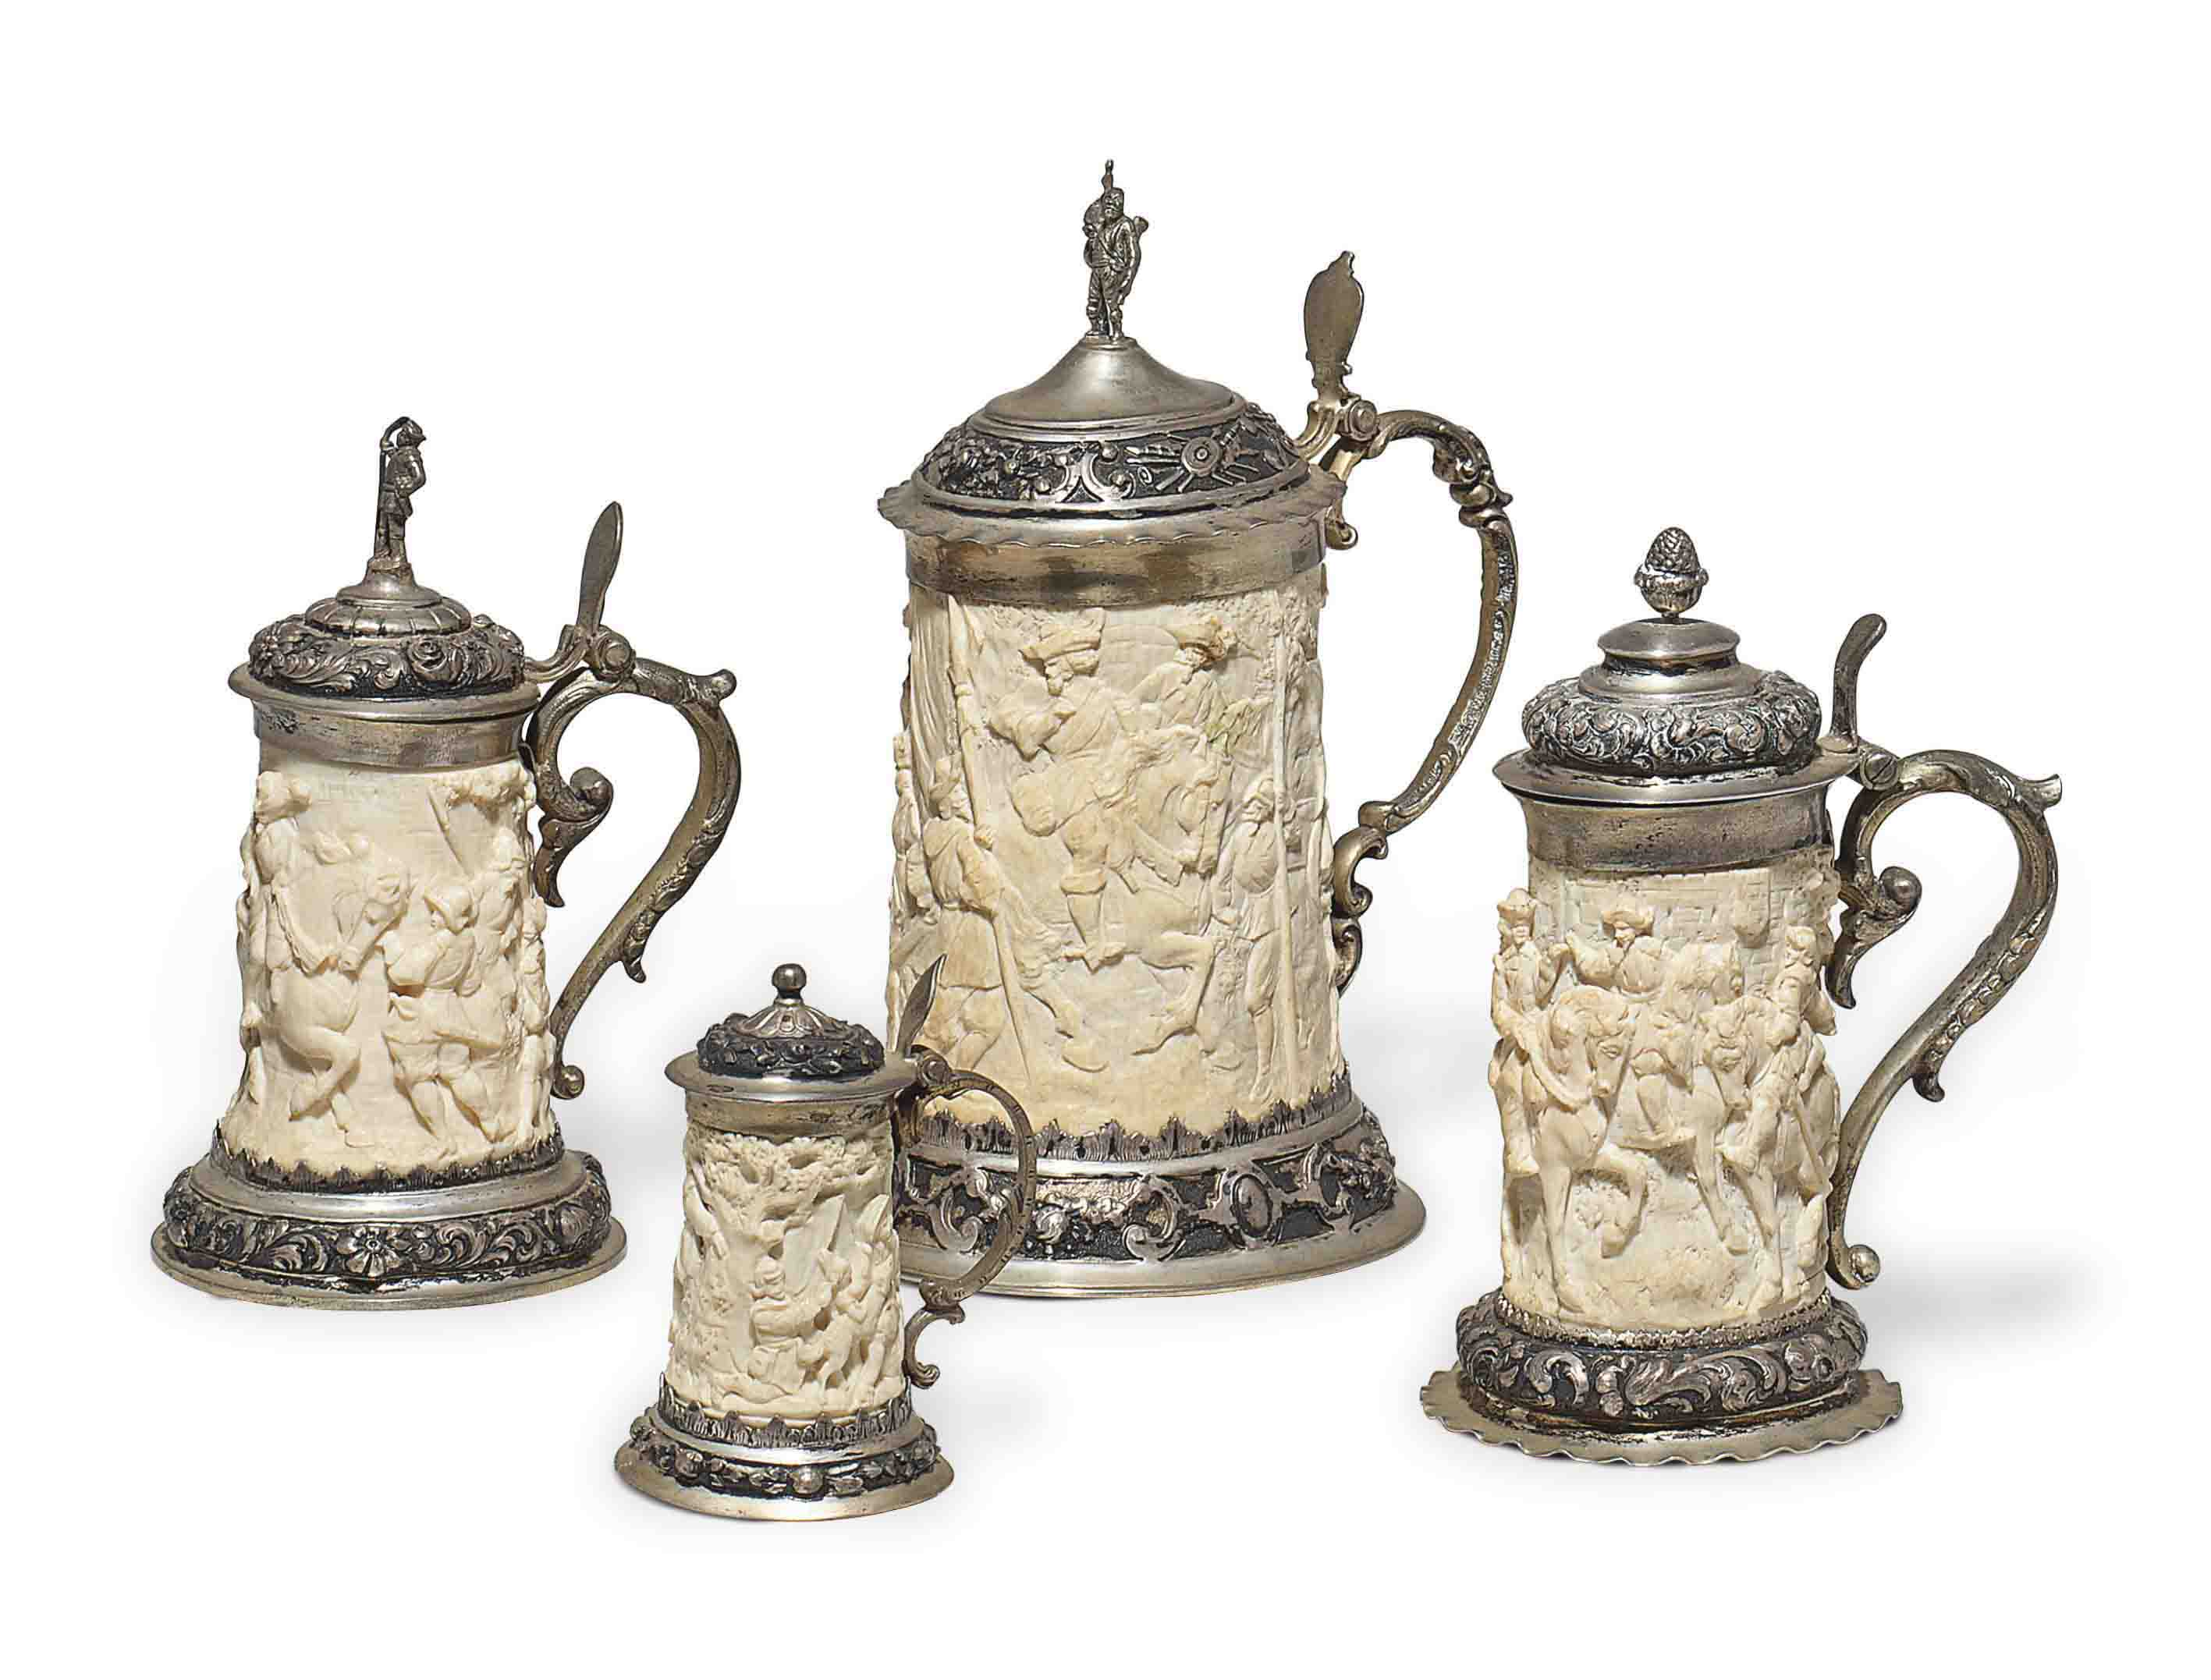 A GROUP OF FOUR GERMAN SILVER-MOUNTED IVORY TANKARDS